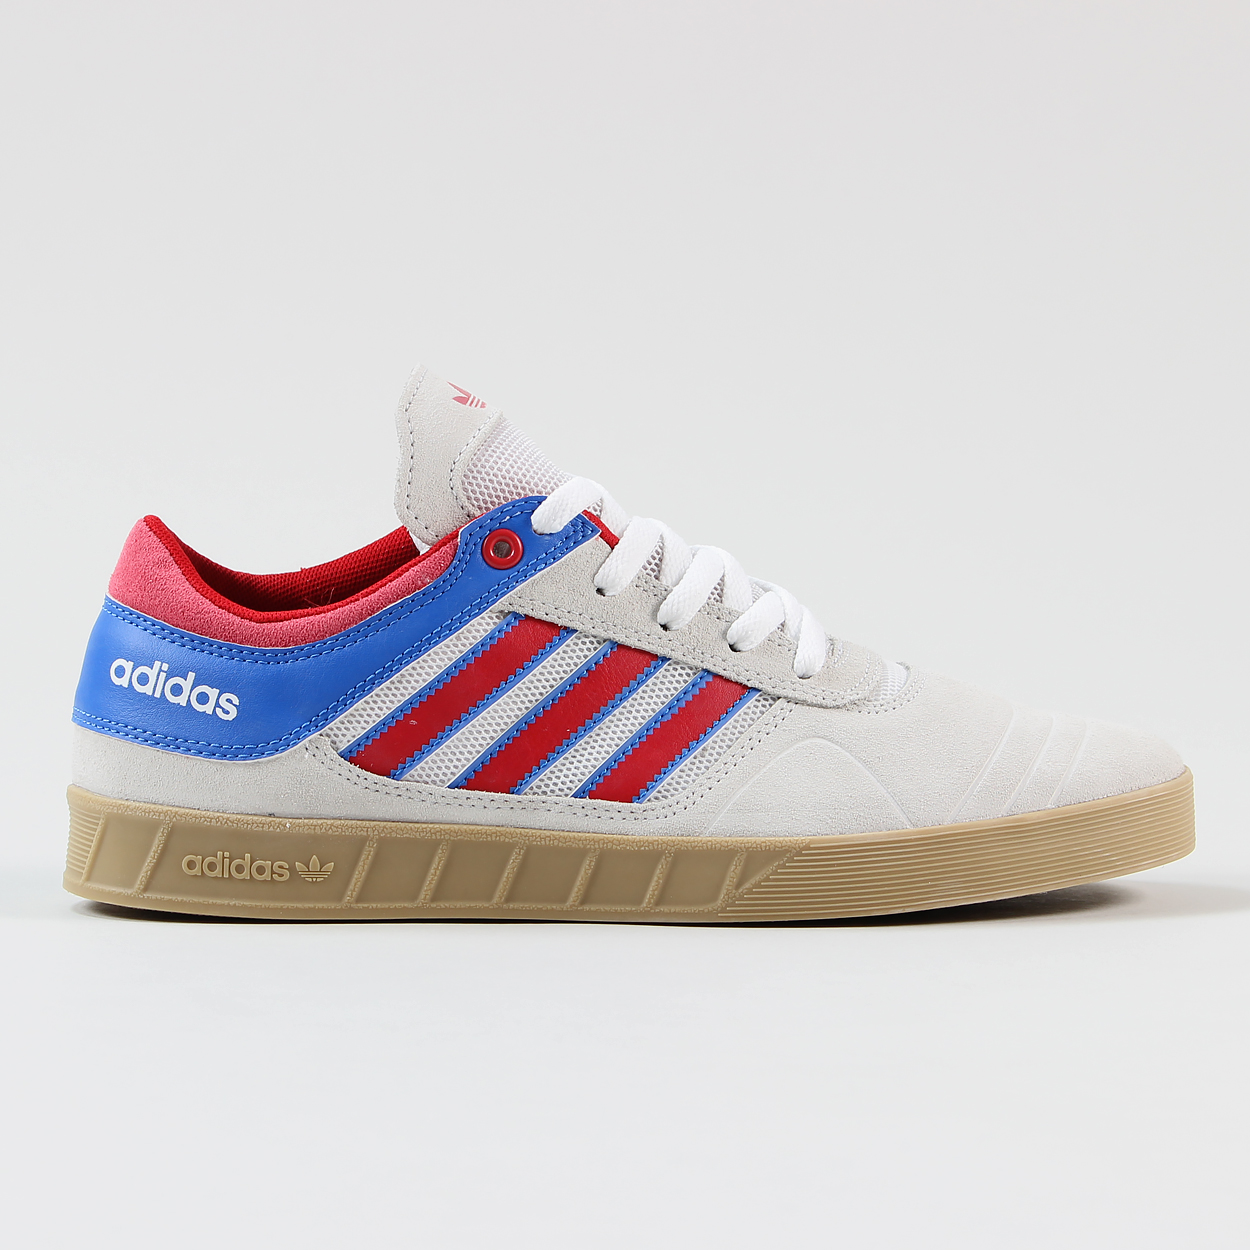 Adidas Skateboarding Claremont ADV Shoes Crystal White Red Blue £45.00 8f1c28191